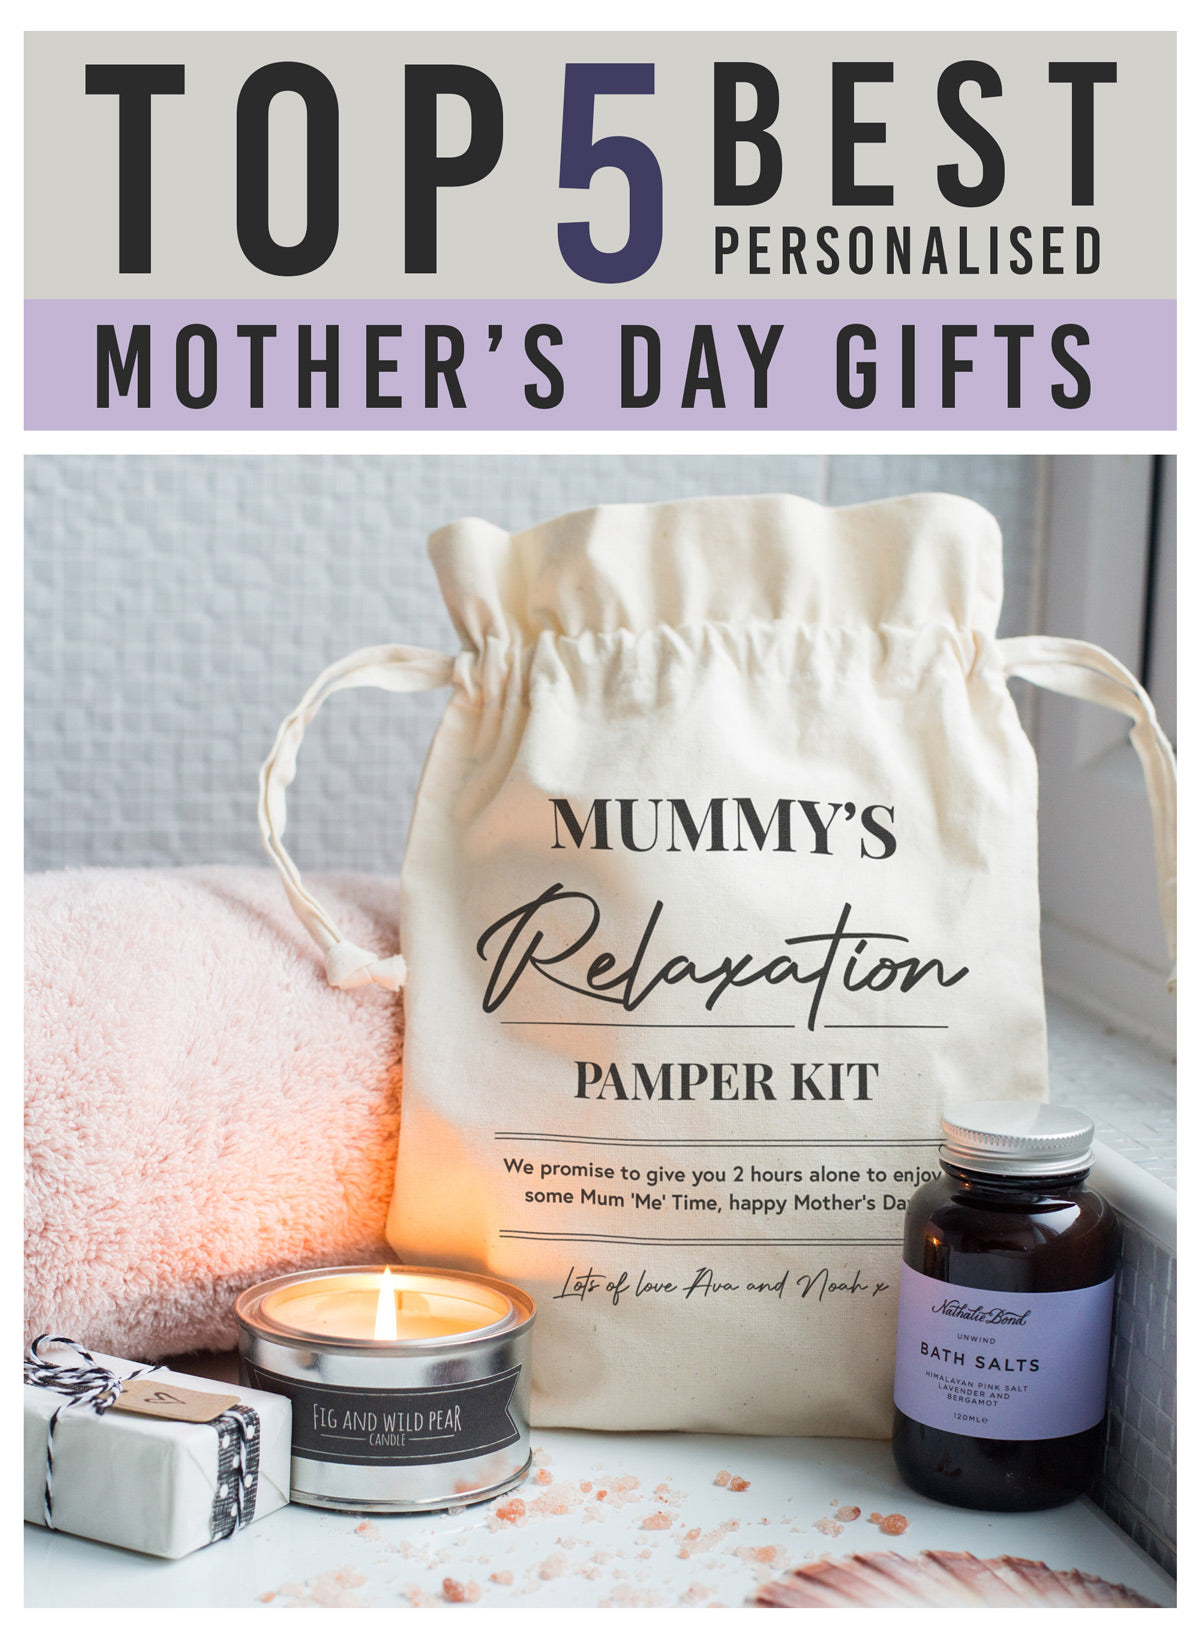 Top 5 best personalised mother's day gifts